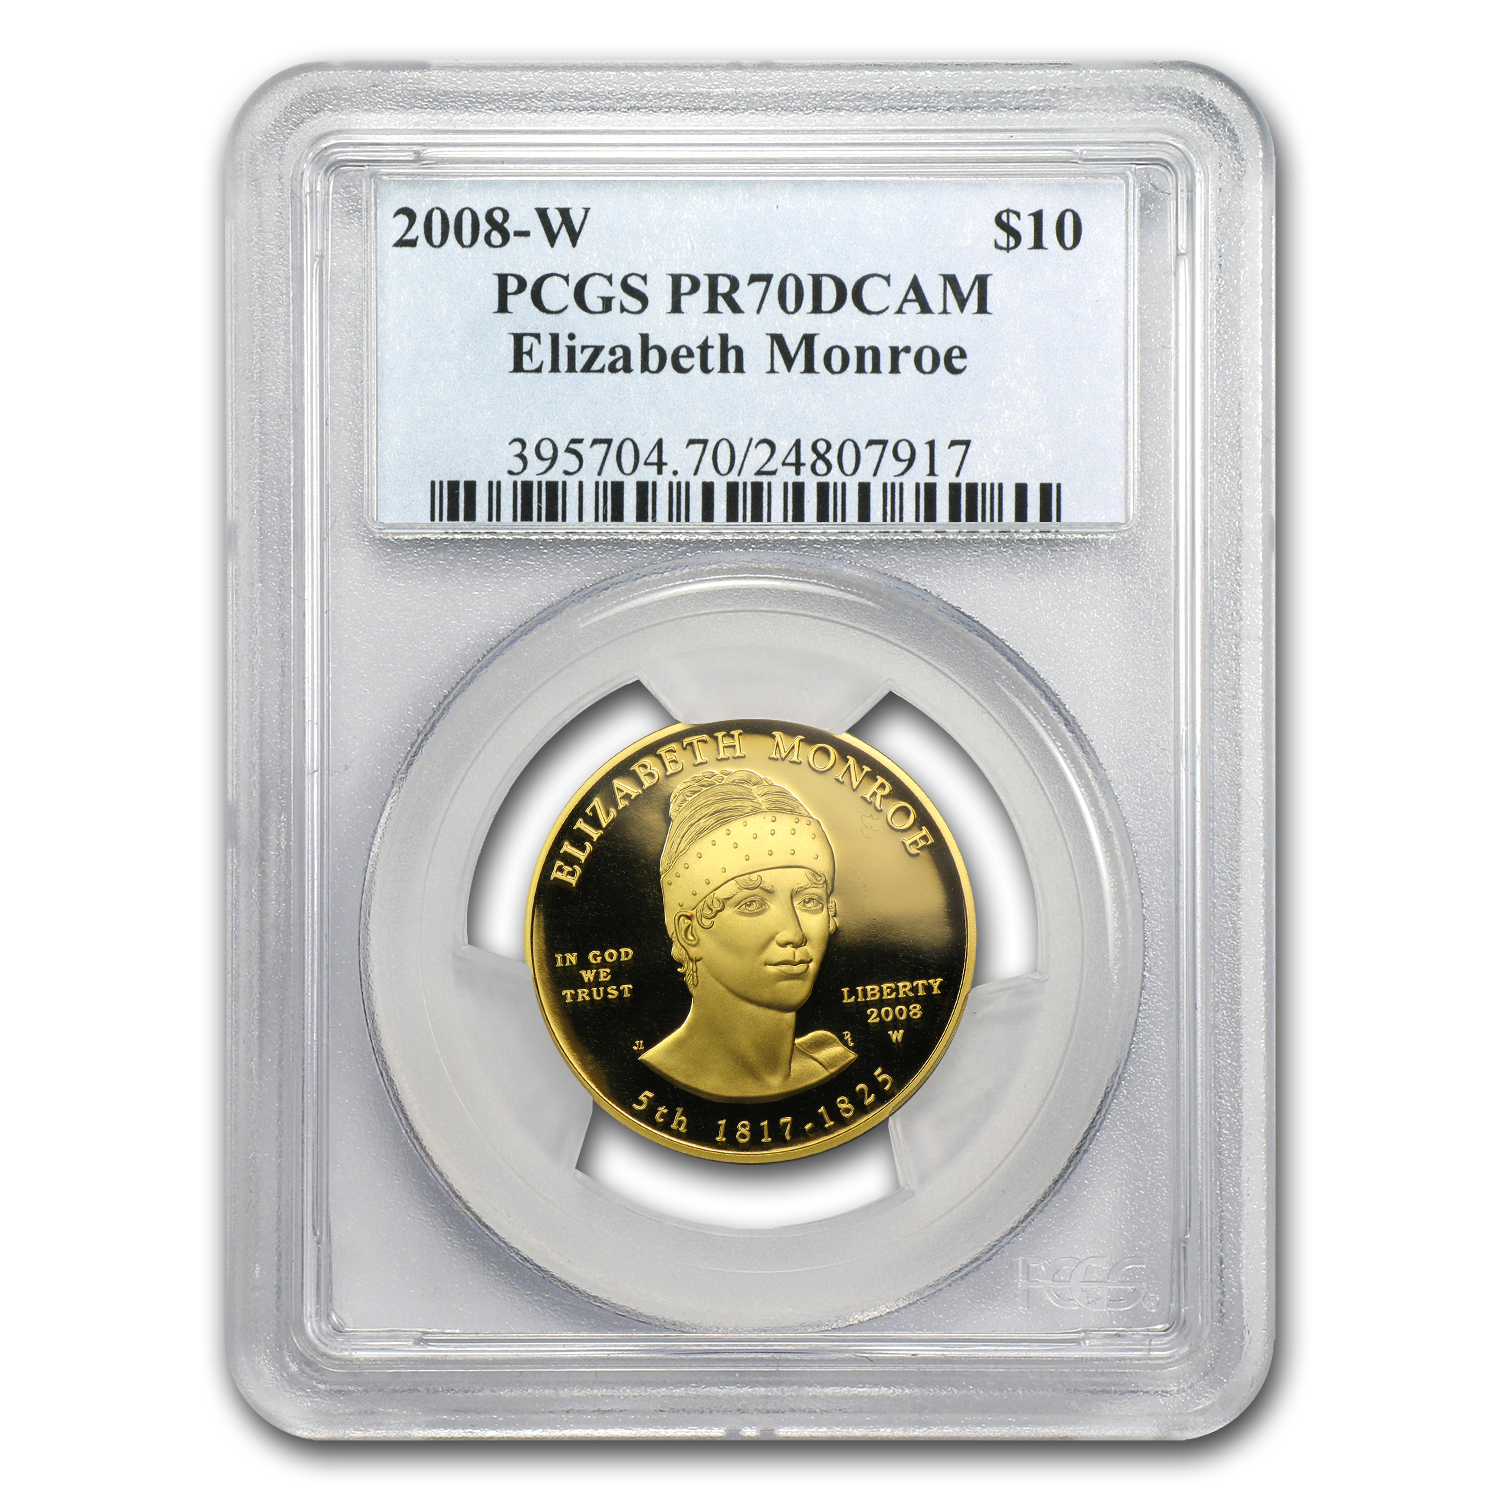 2008-W 1/2 oz Proof Gold Elizabeth Monroe PR-70 PCGS